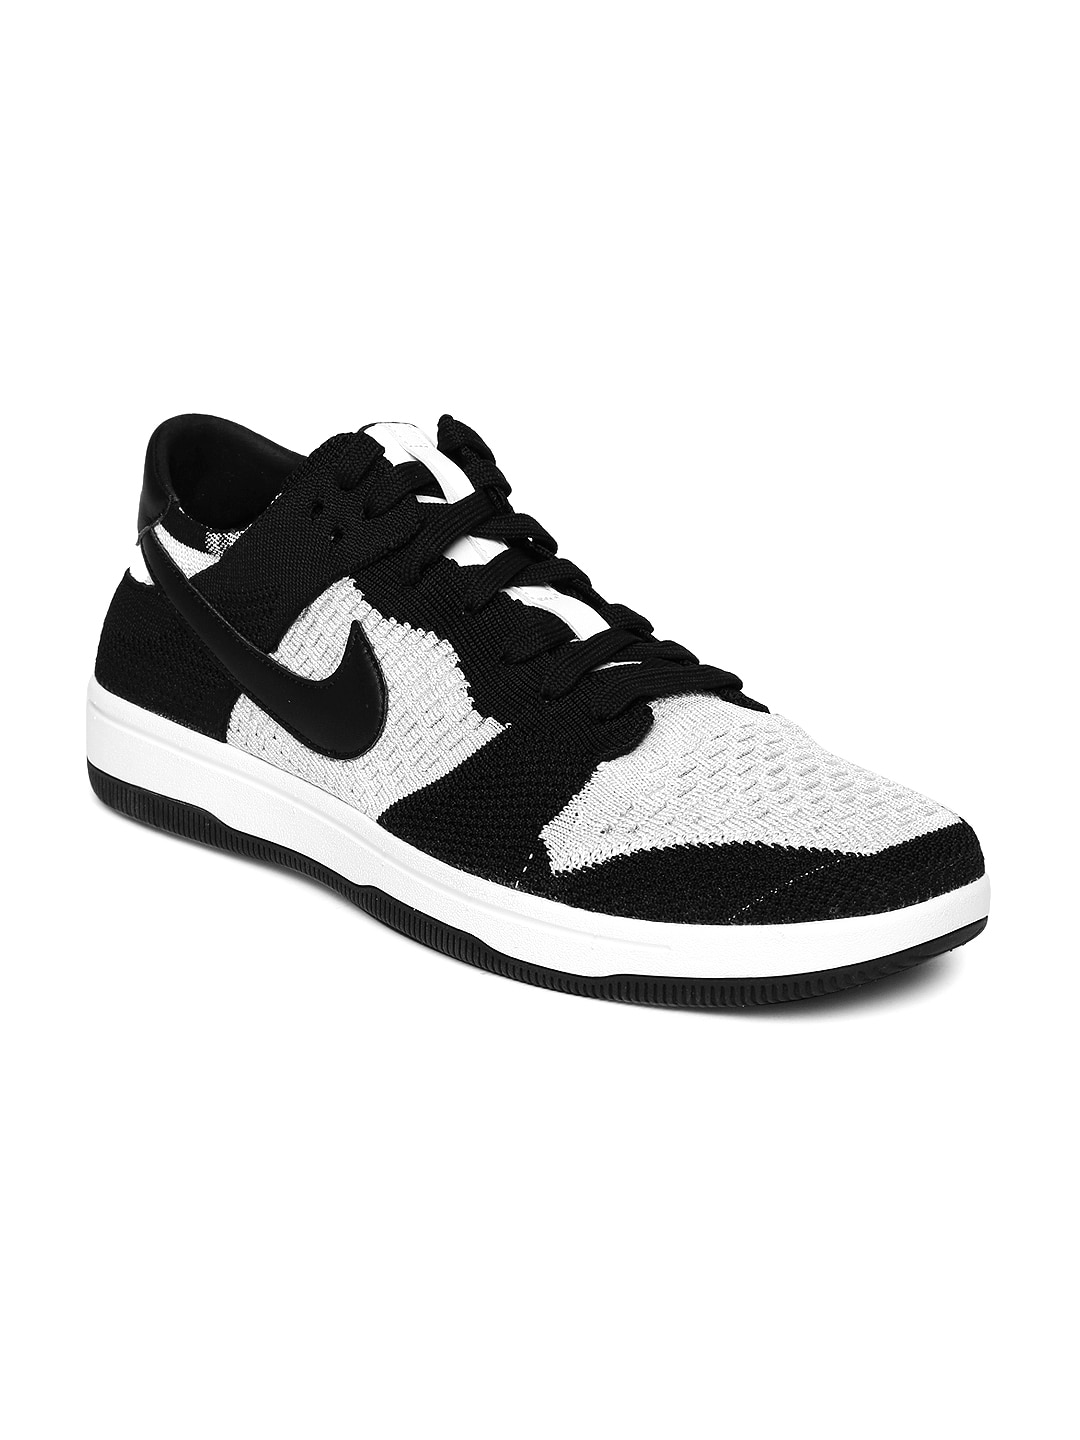 Nike Men Black & White DUNK FLYKNIT Sneakers image